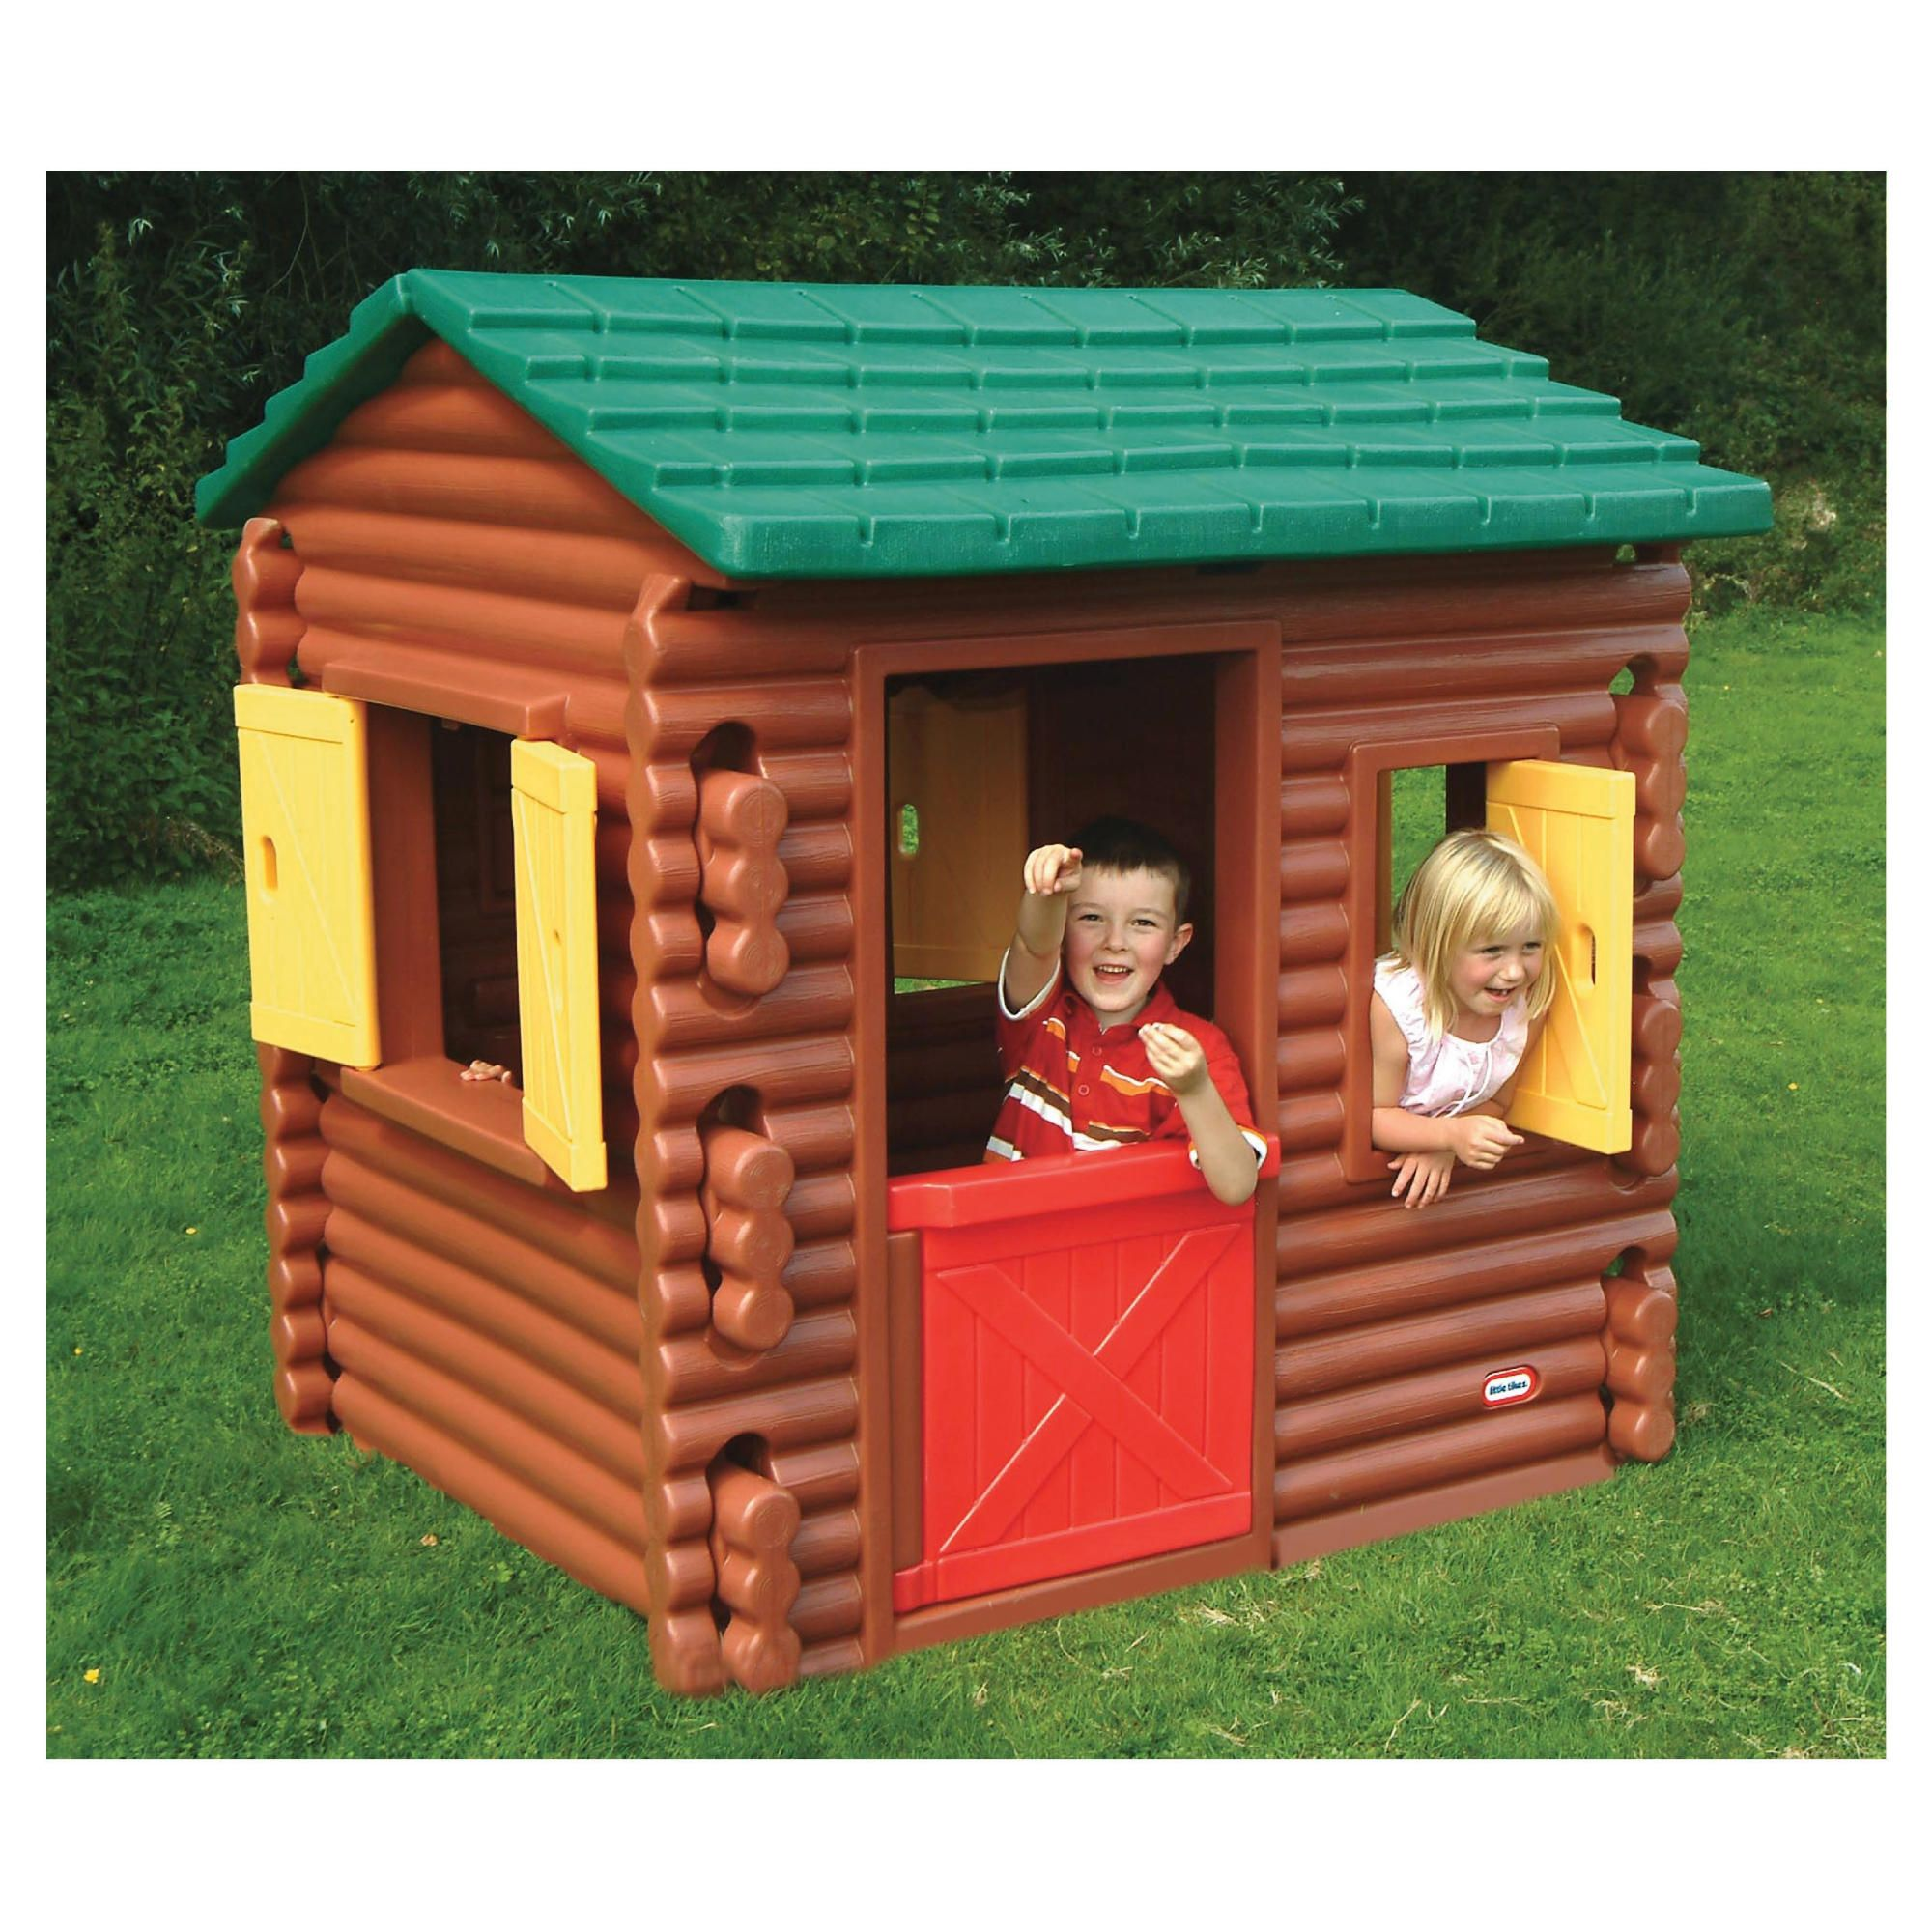 charming little tikes playhouse made of plastic with brown siding and green roof for playground decor ideas